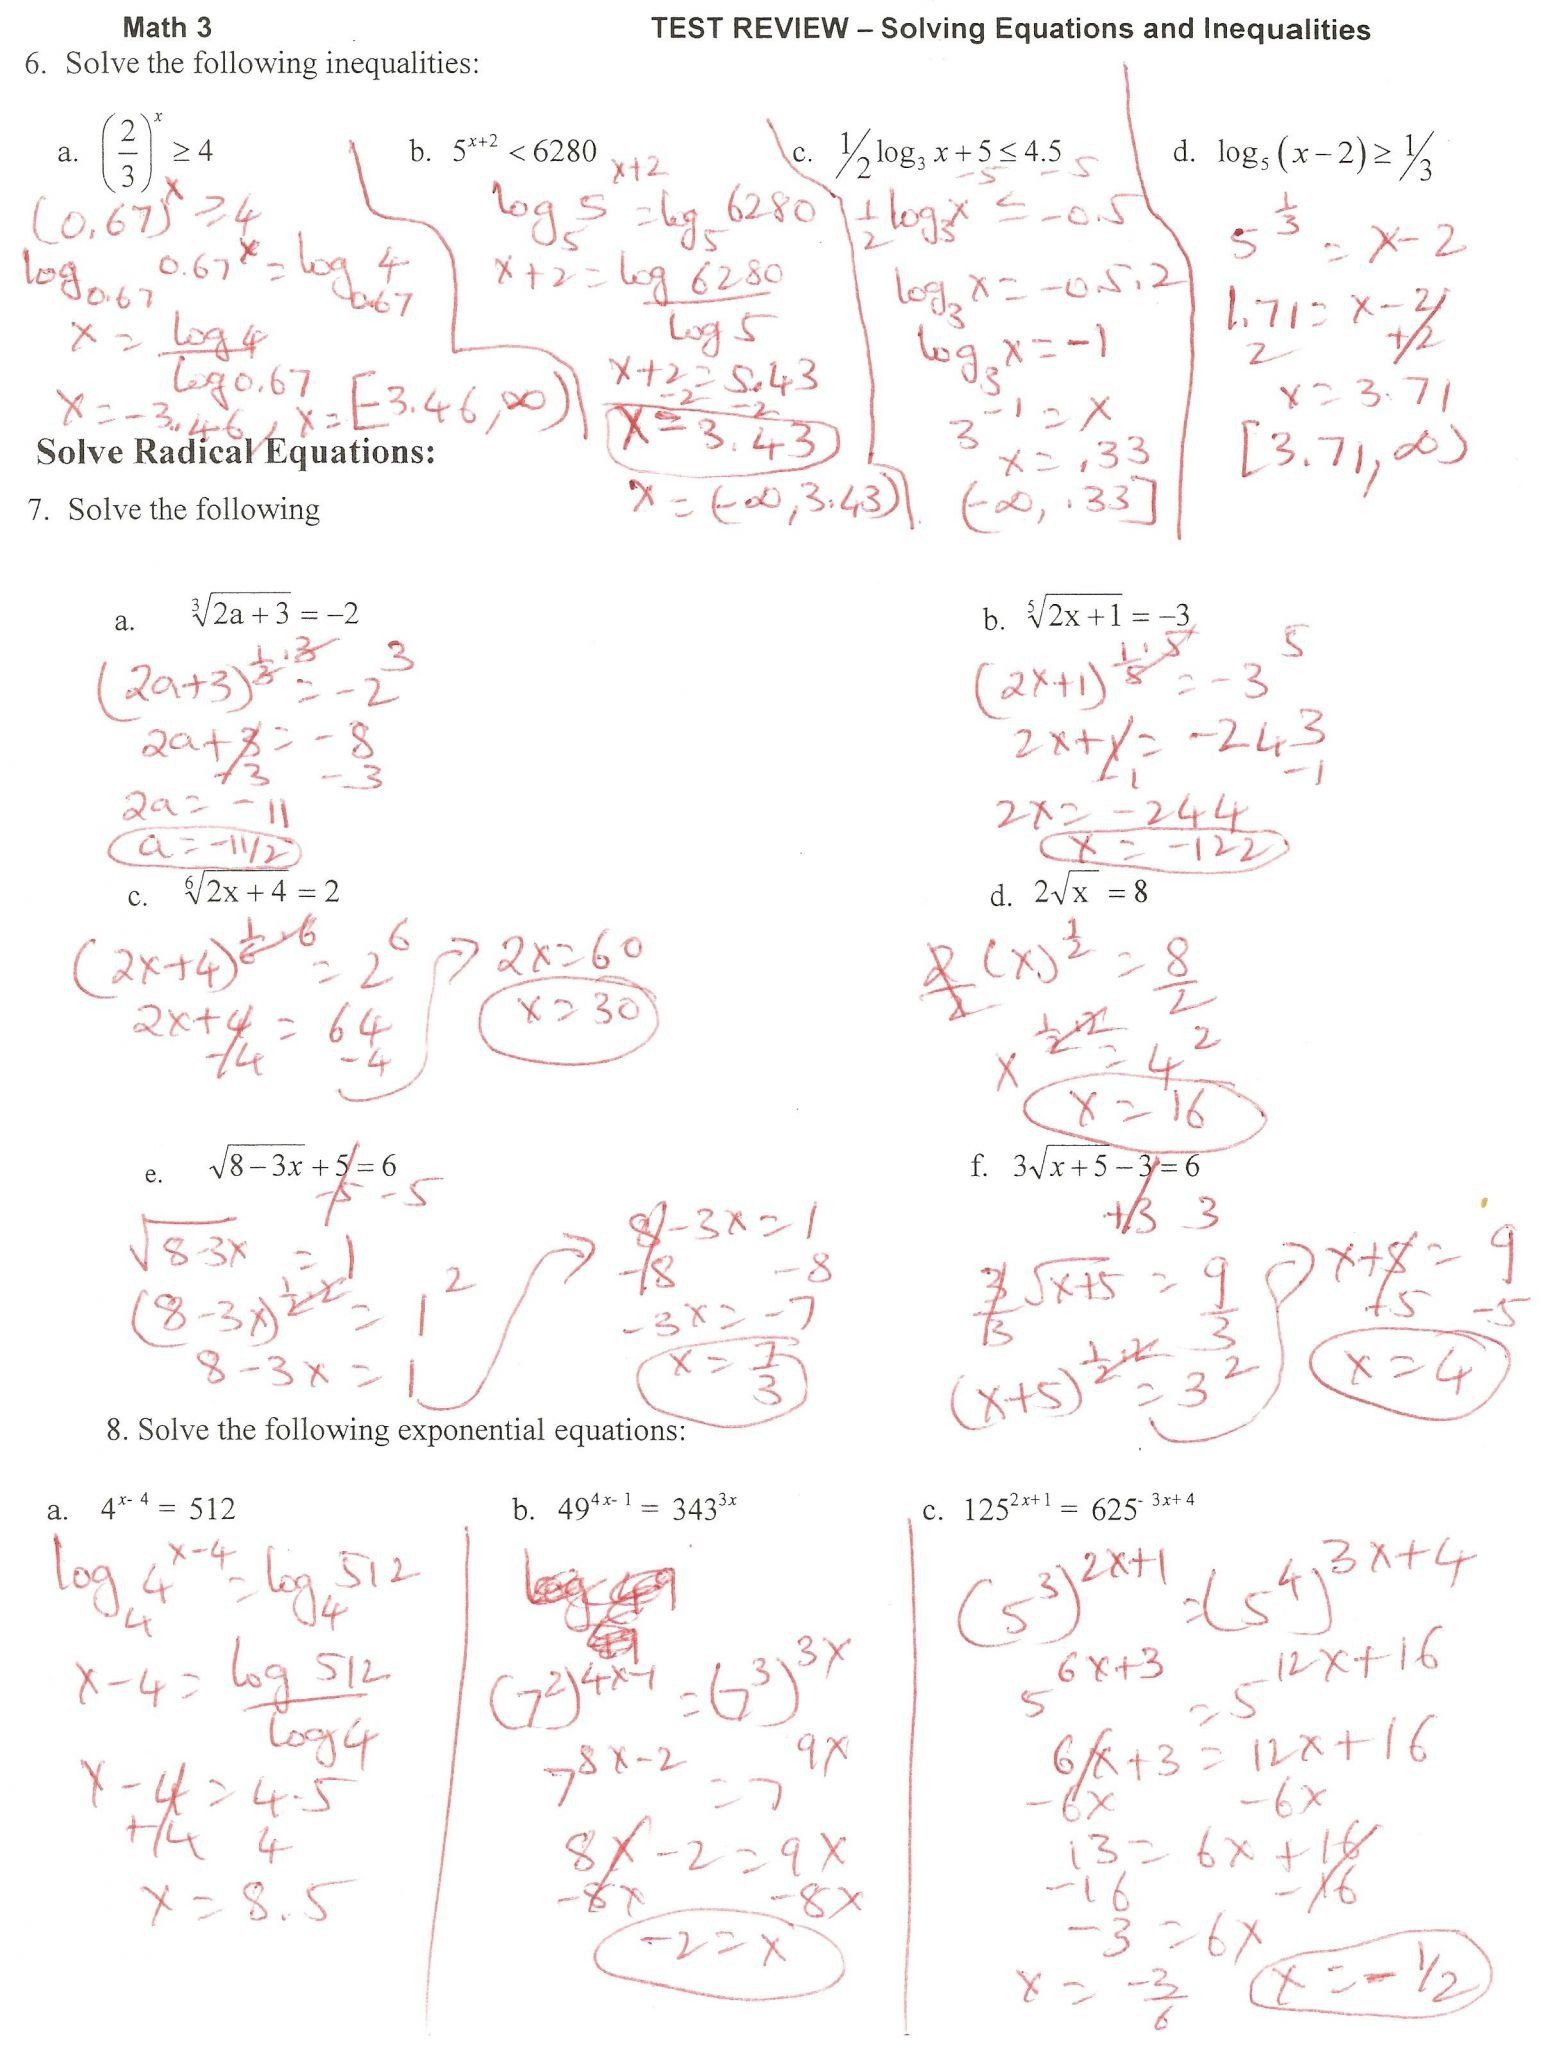 Logarithm Worksheet With Answers Solving Logarithmic Equations Worksheet Answer Key Equations Solving Equations Radical Equations